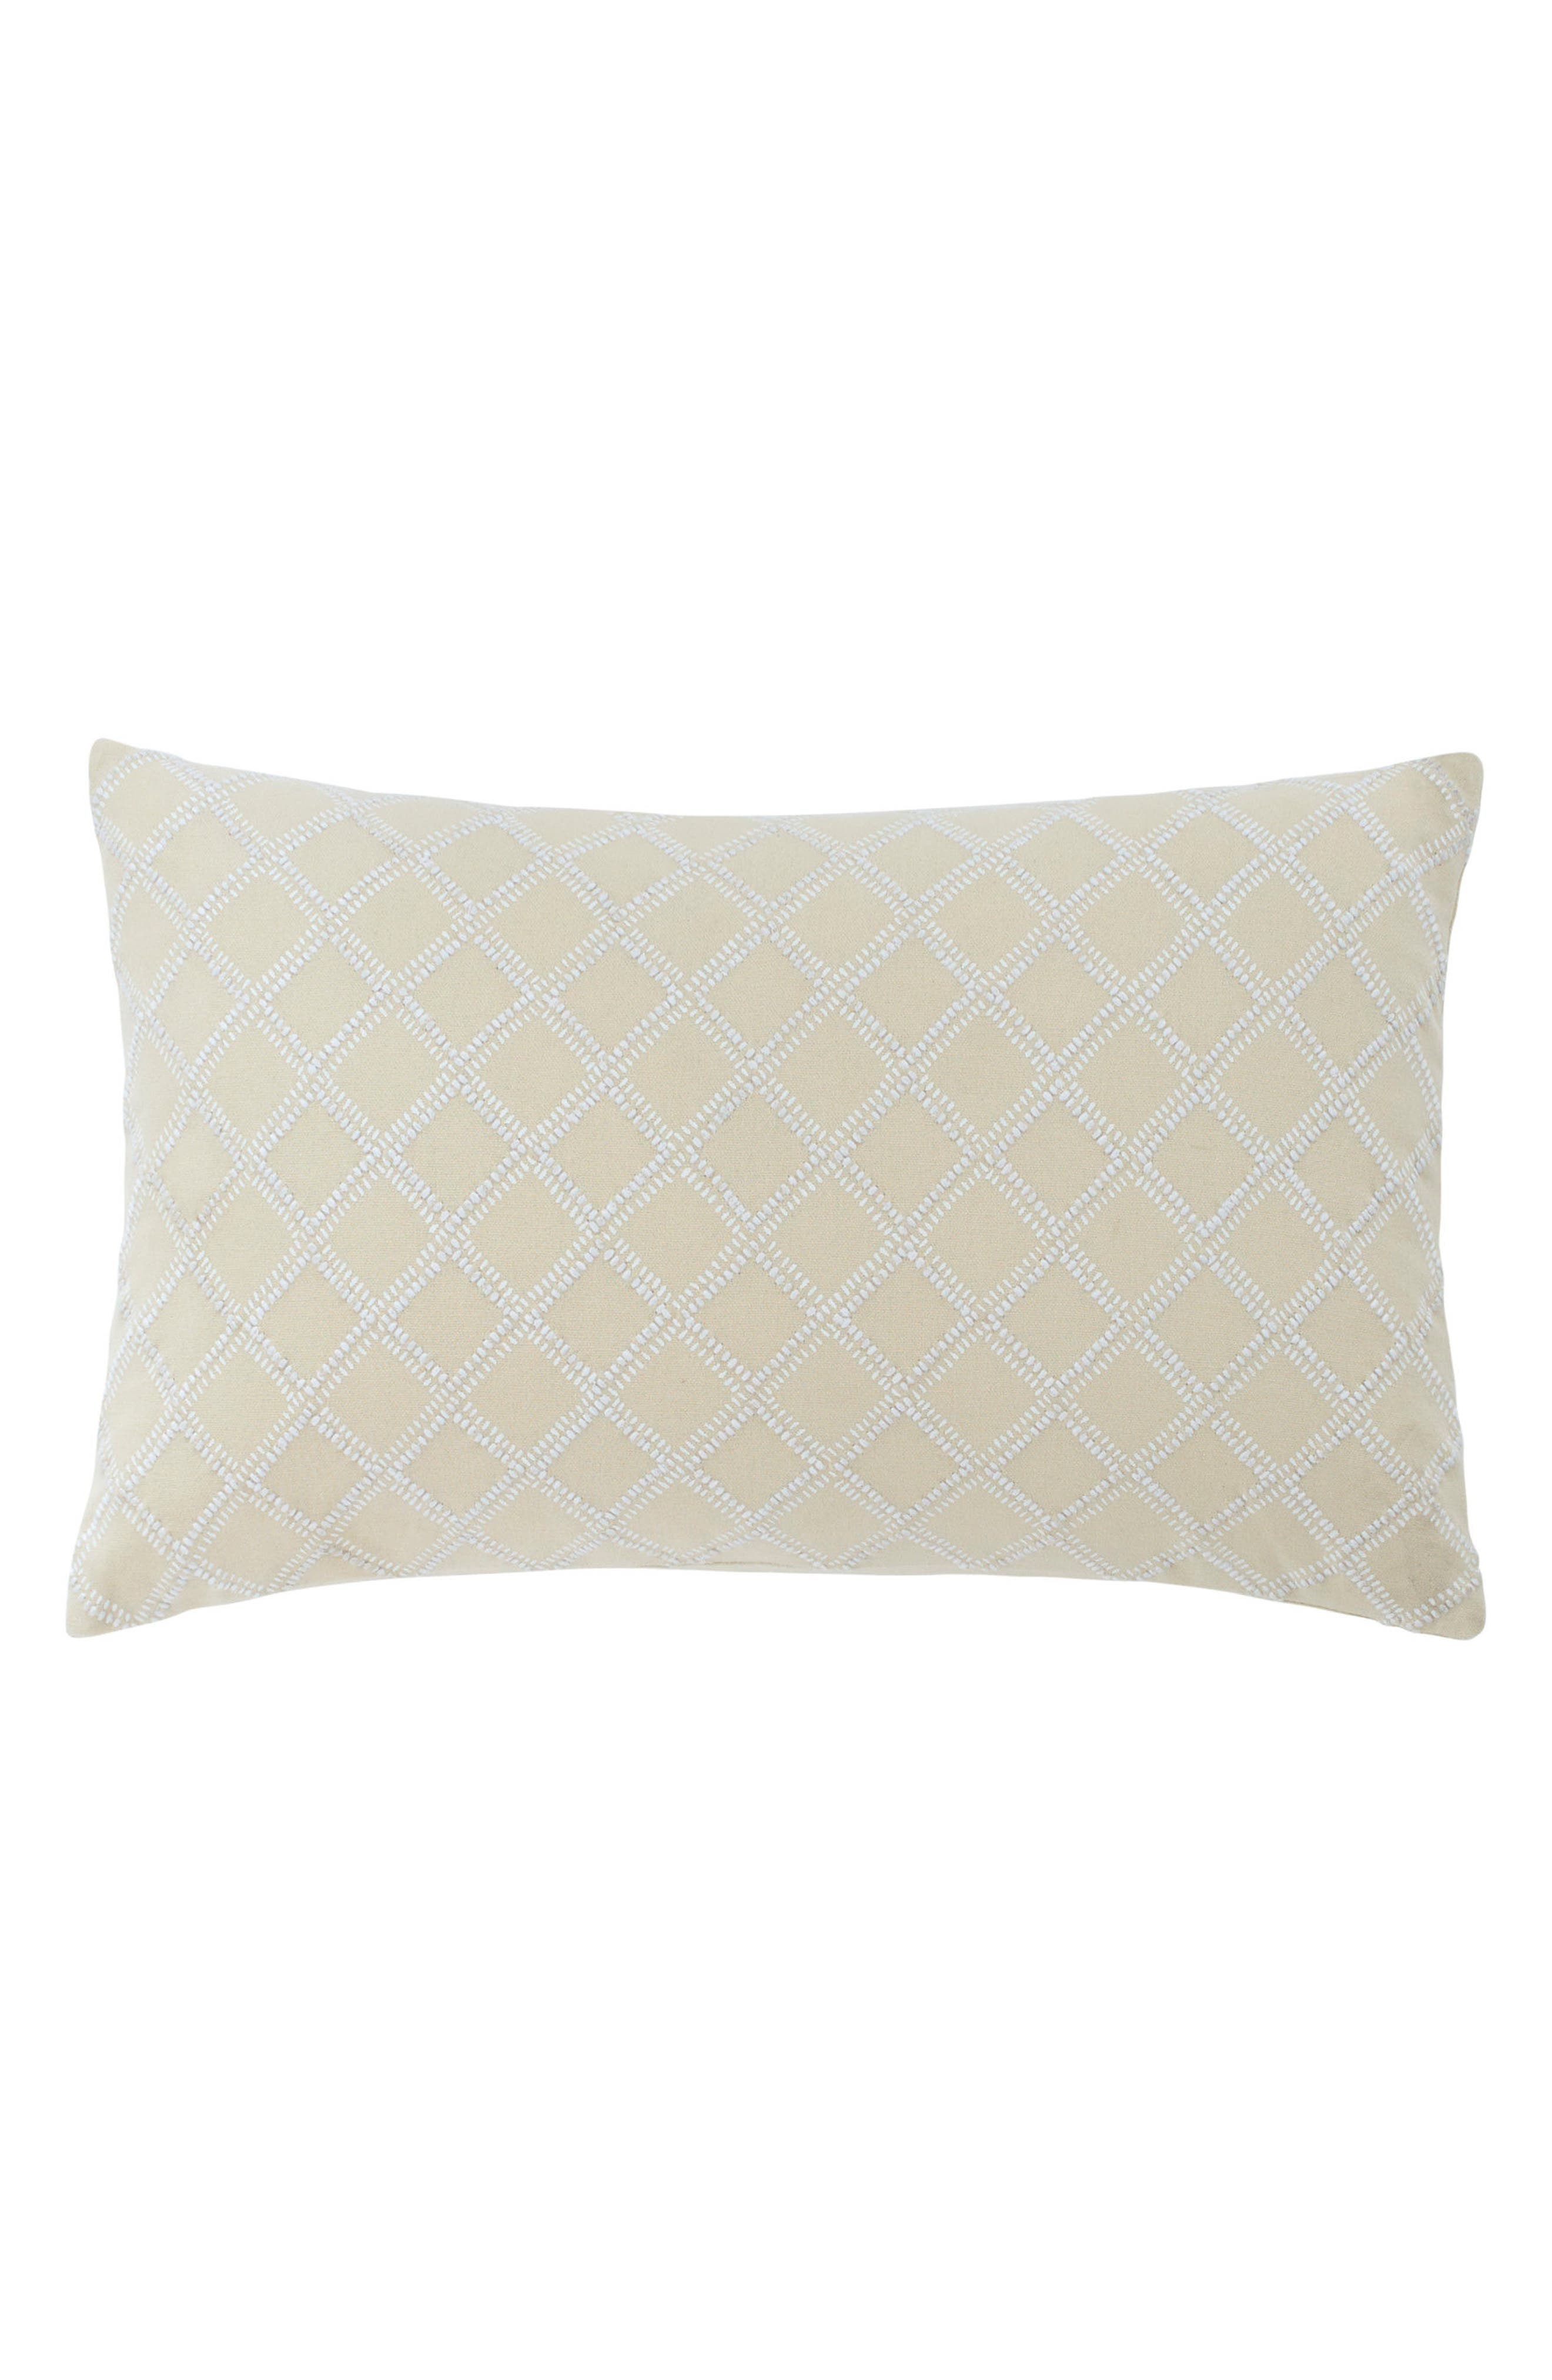 Southern Tie Southern Hospitality Trellis Accent Pillow,                             Main thumbnail 1, color,                             250